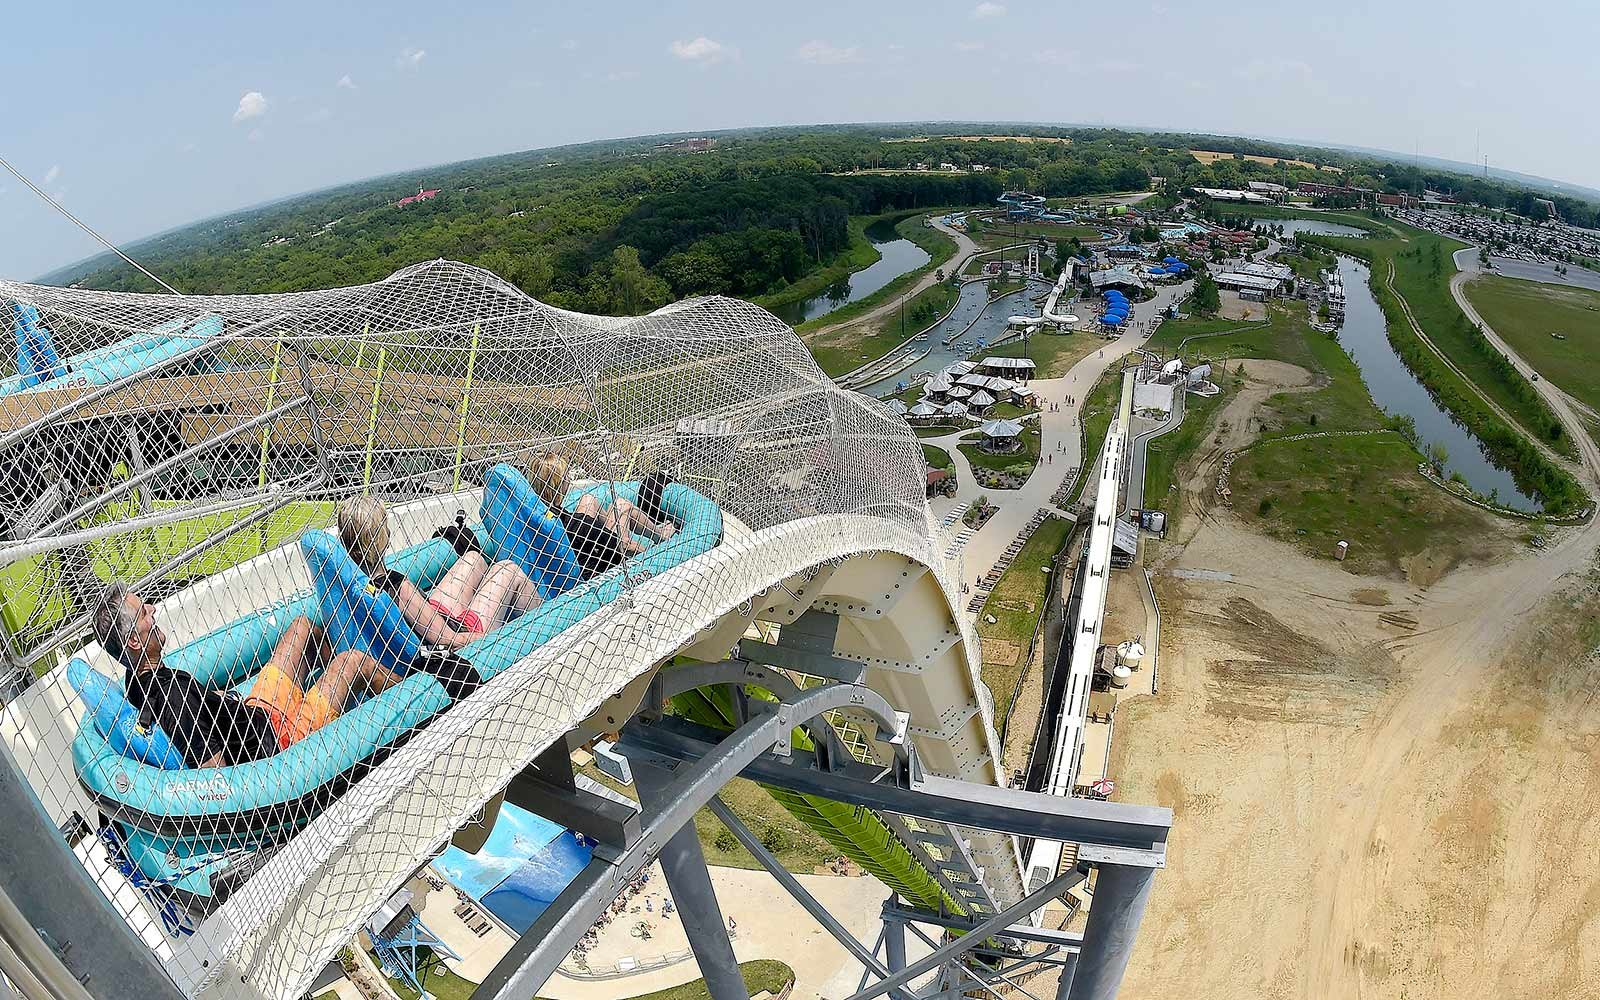 Verrückt water slide closing